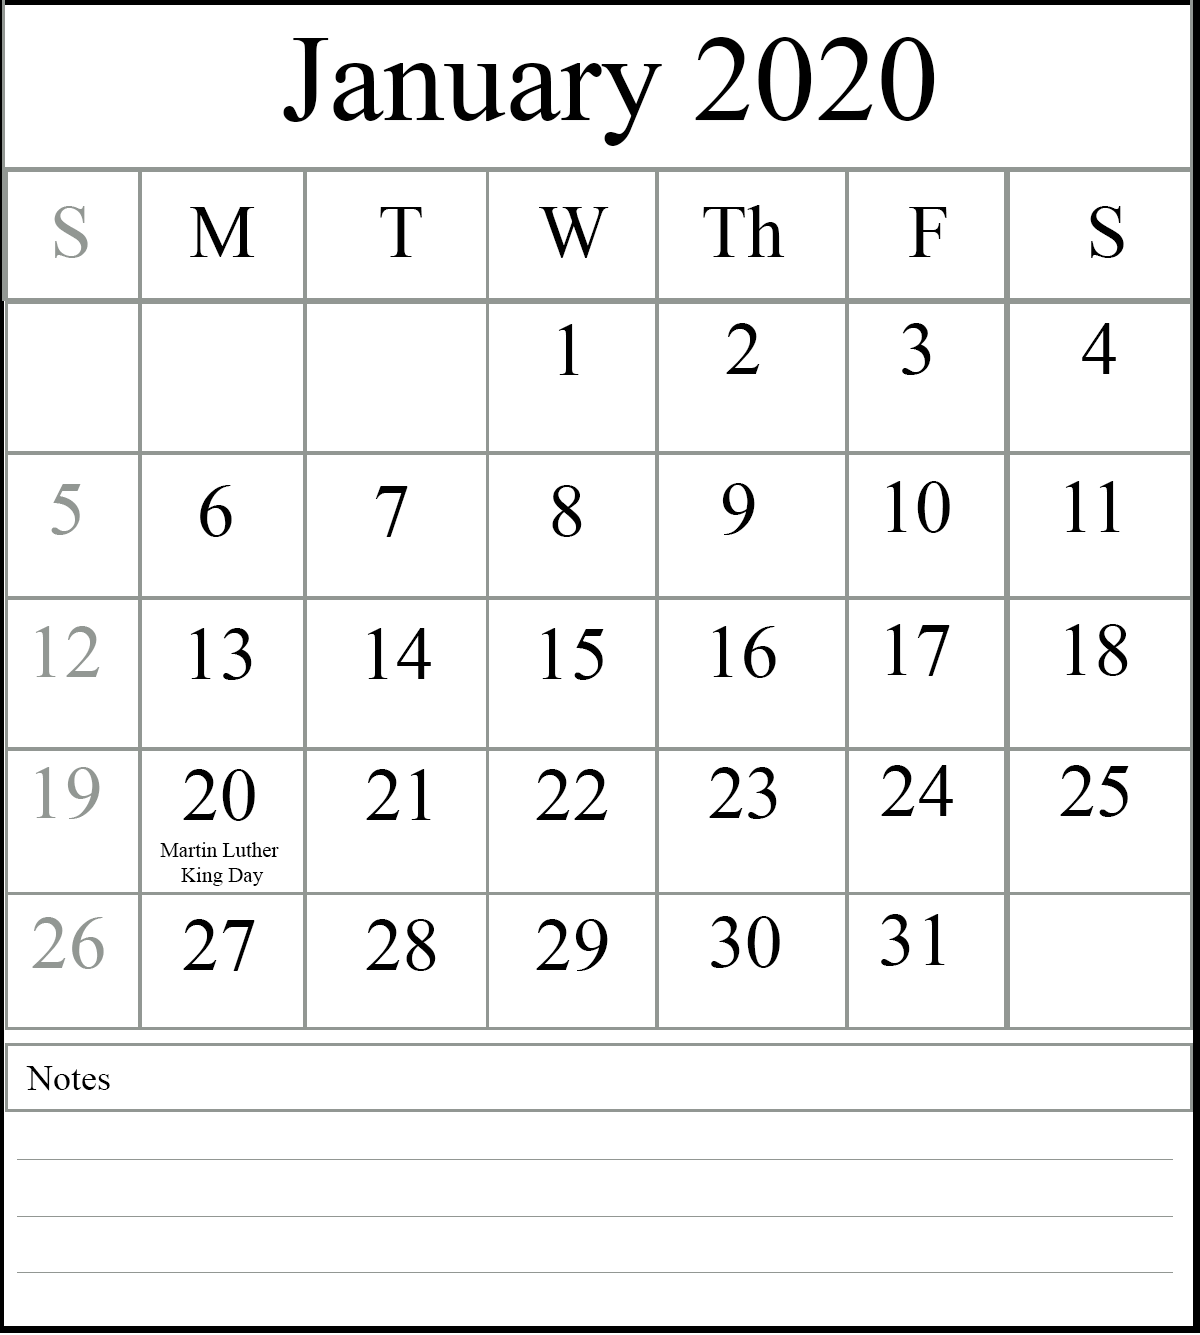 January 2020 Calendar Excel And Word